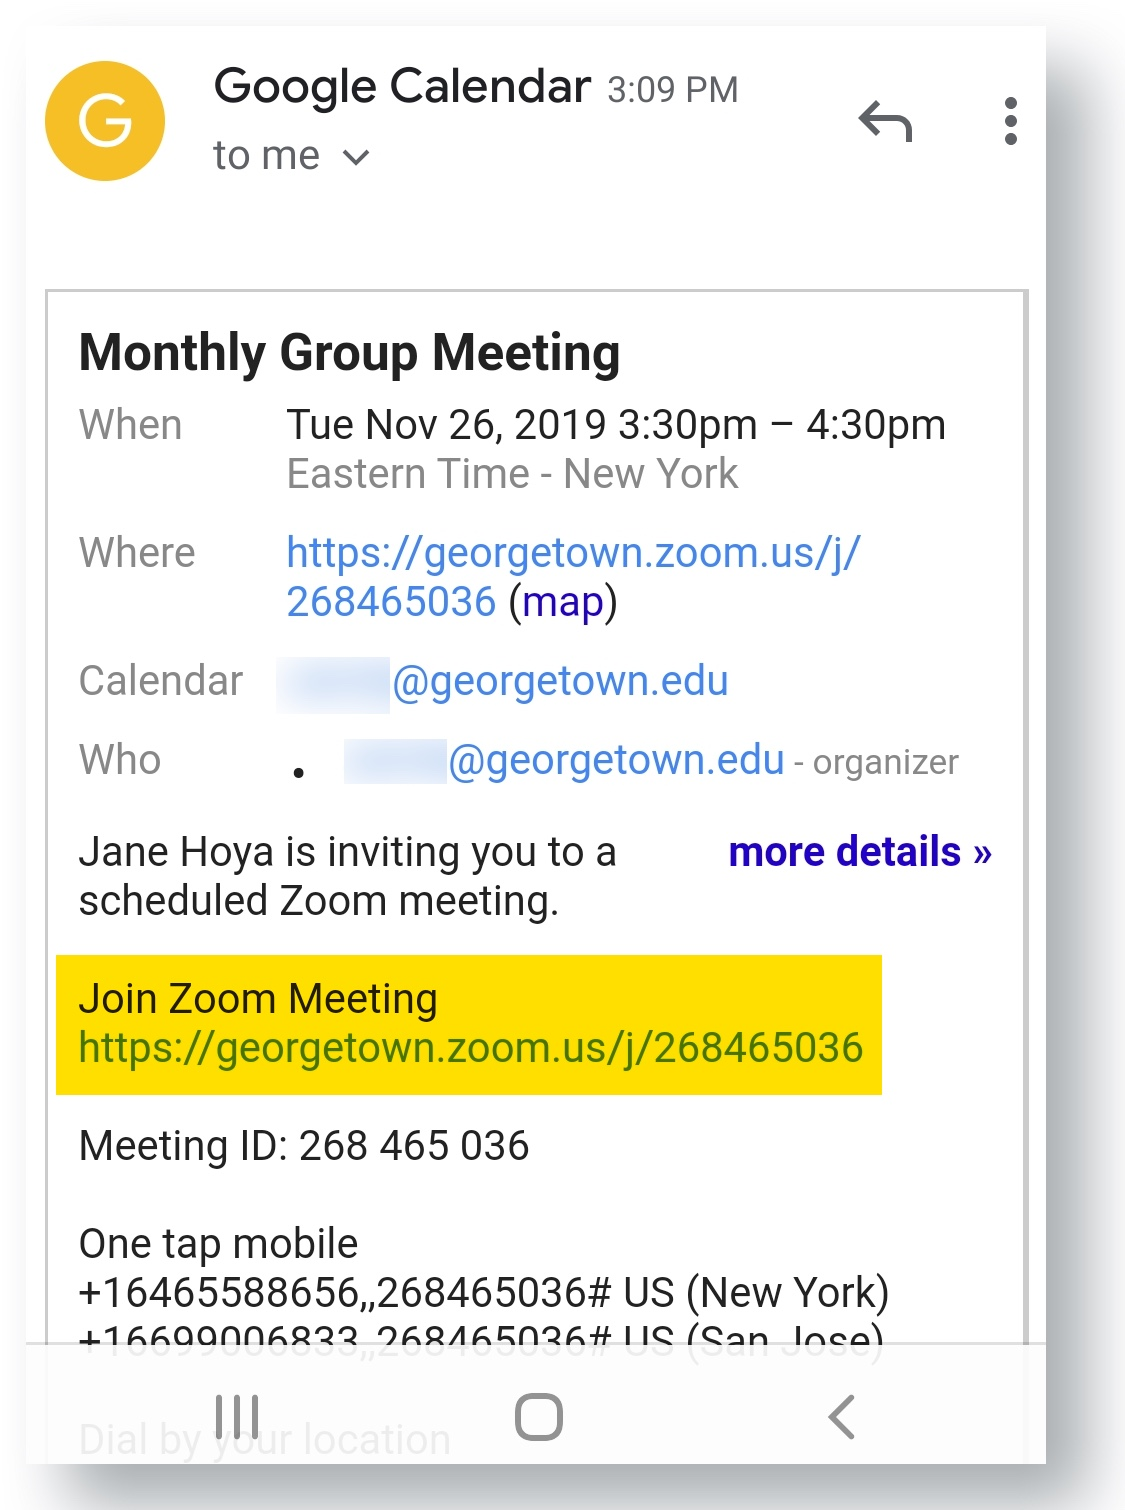 Tap meeting URL from invitation email